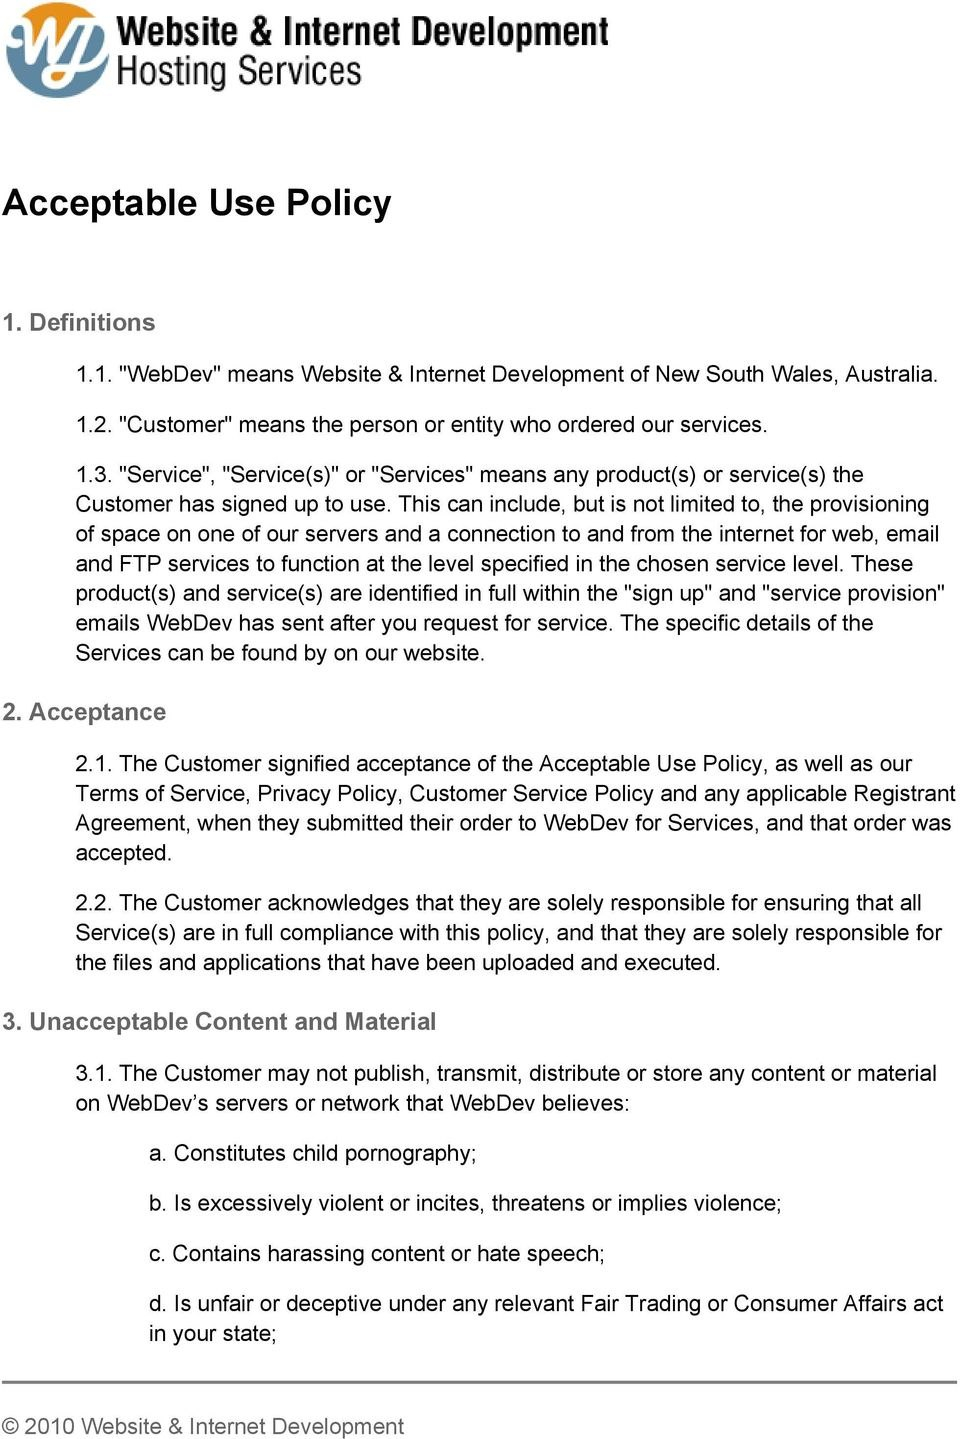 Acceptable Use Policy  Pdf Regarding Public Wifi Acceptable Use Policy Template